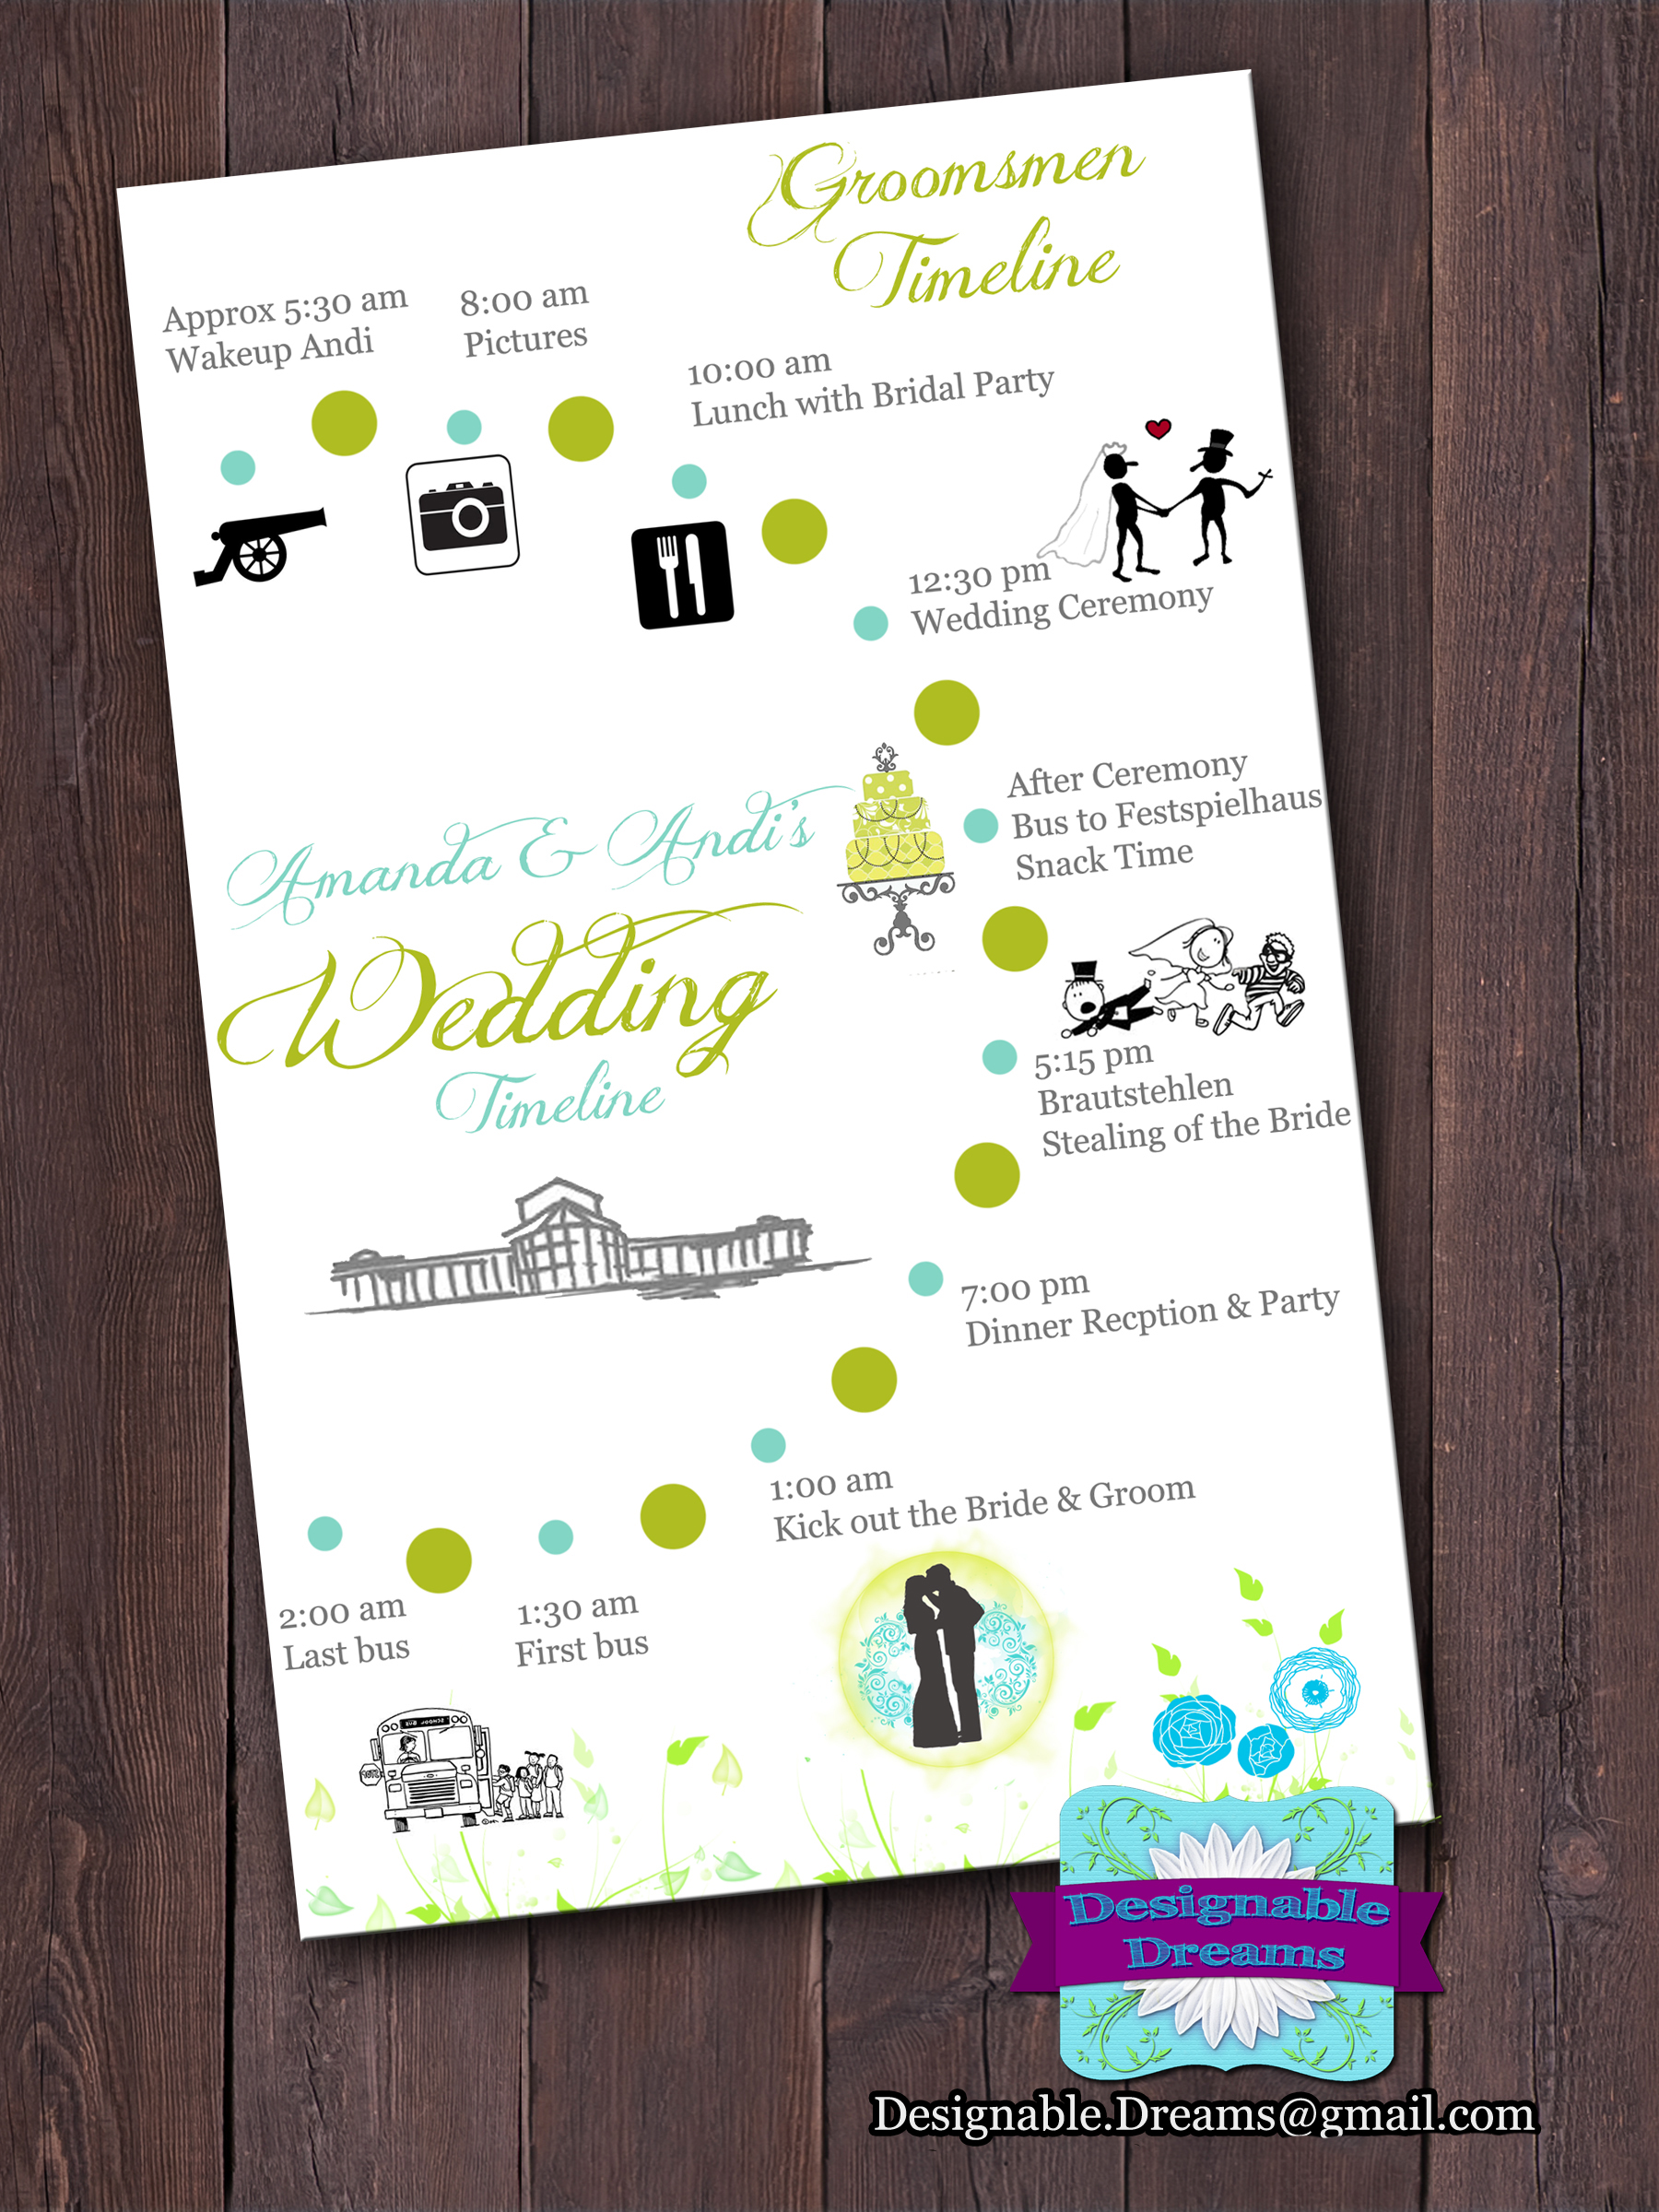 Customized Wedding Timeline Card On Luulla